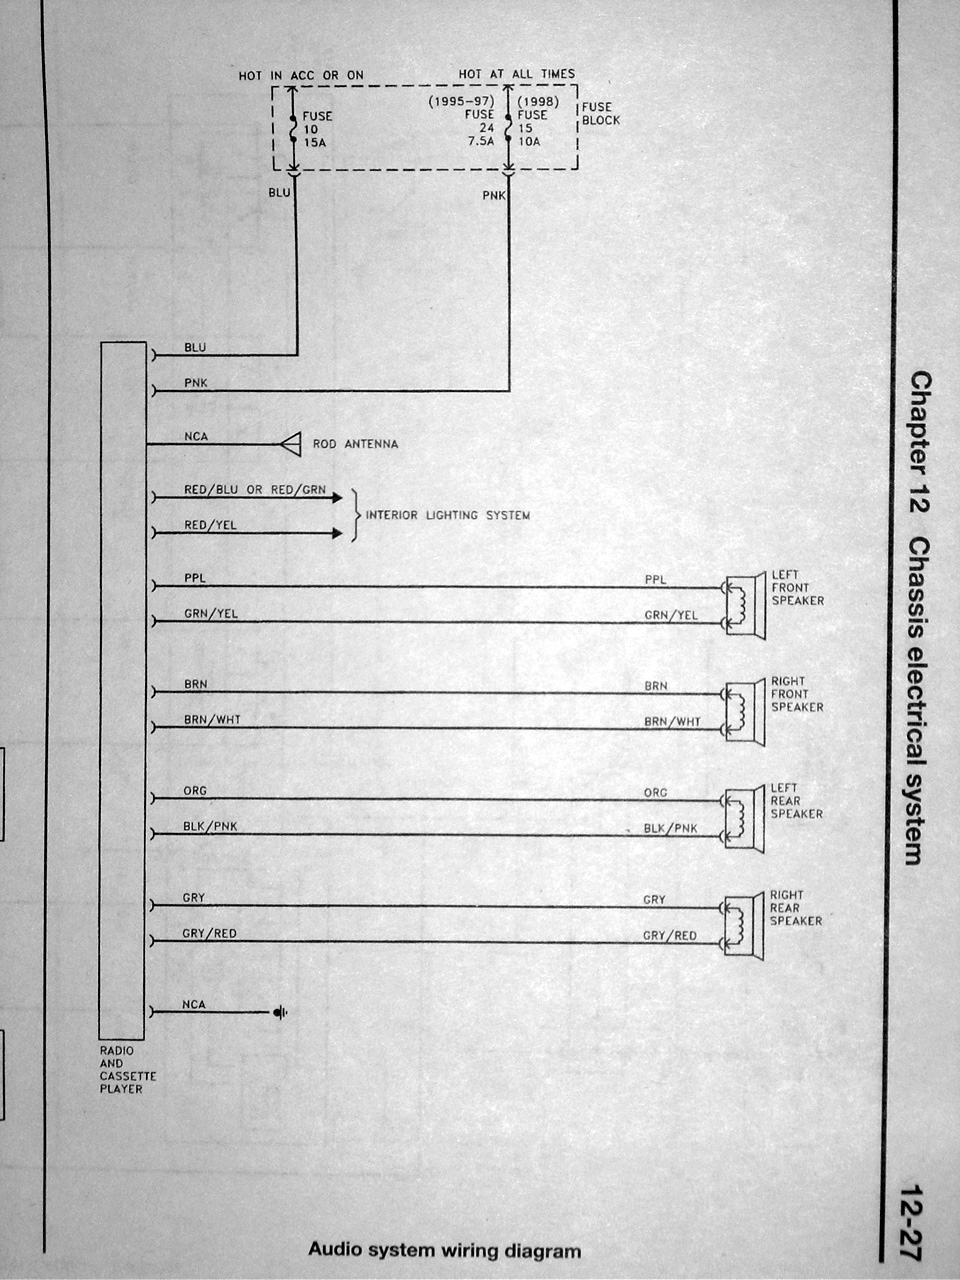 DSC01849 wiring diagram thread *useful info* nissan forum 2008 nissan xterra stereo wiring diagram at virtualis.co